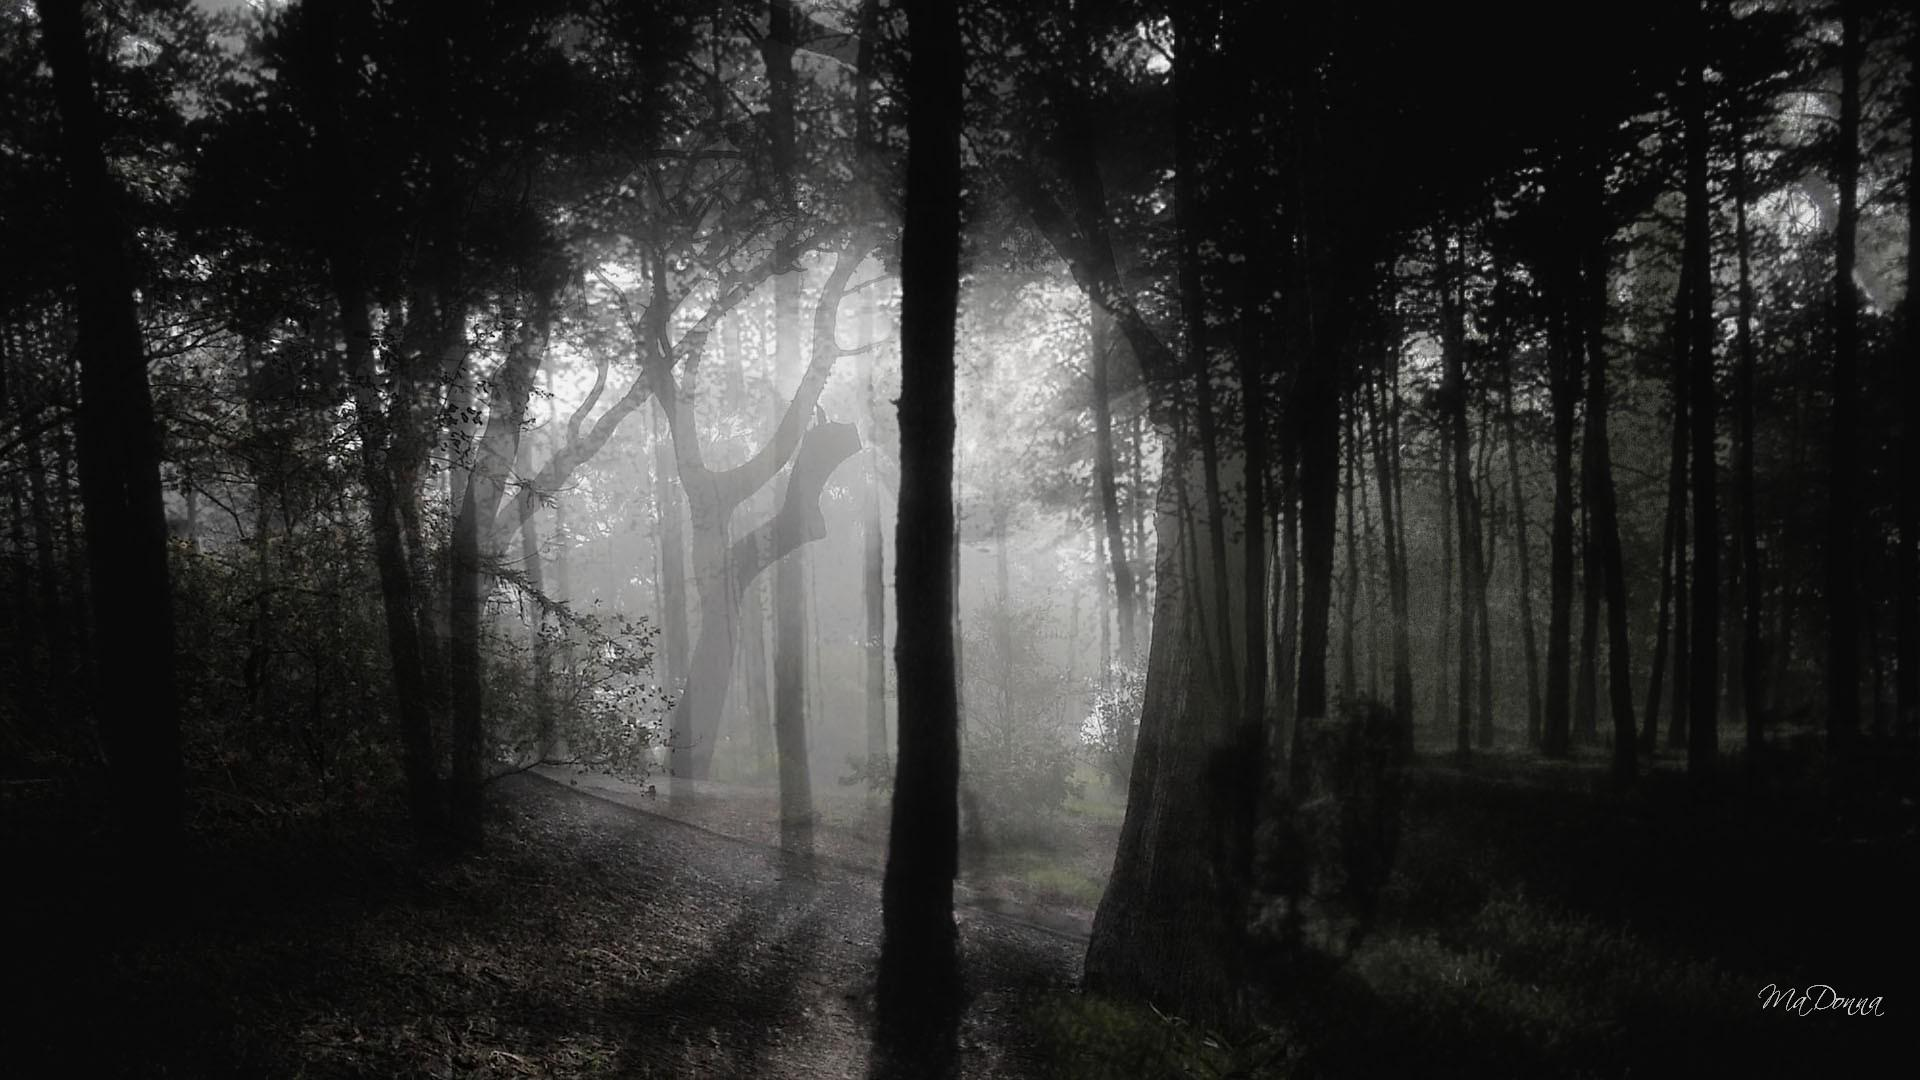 Dark Woods Images.